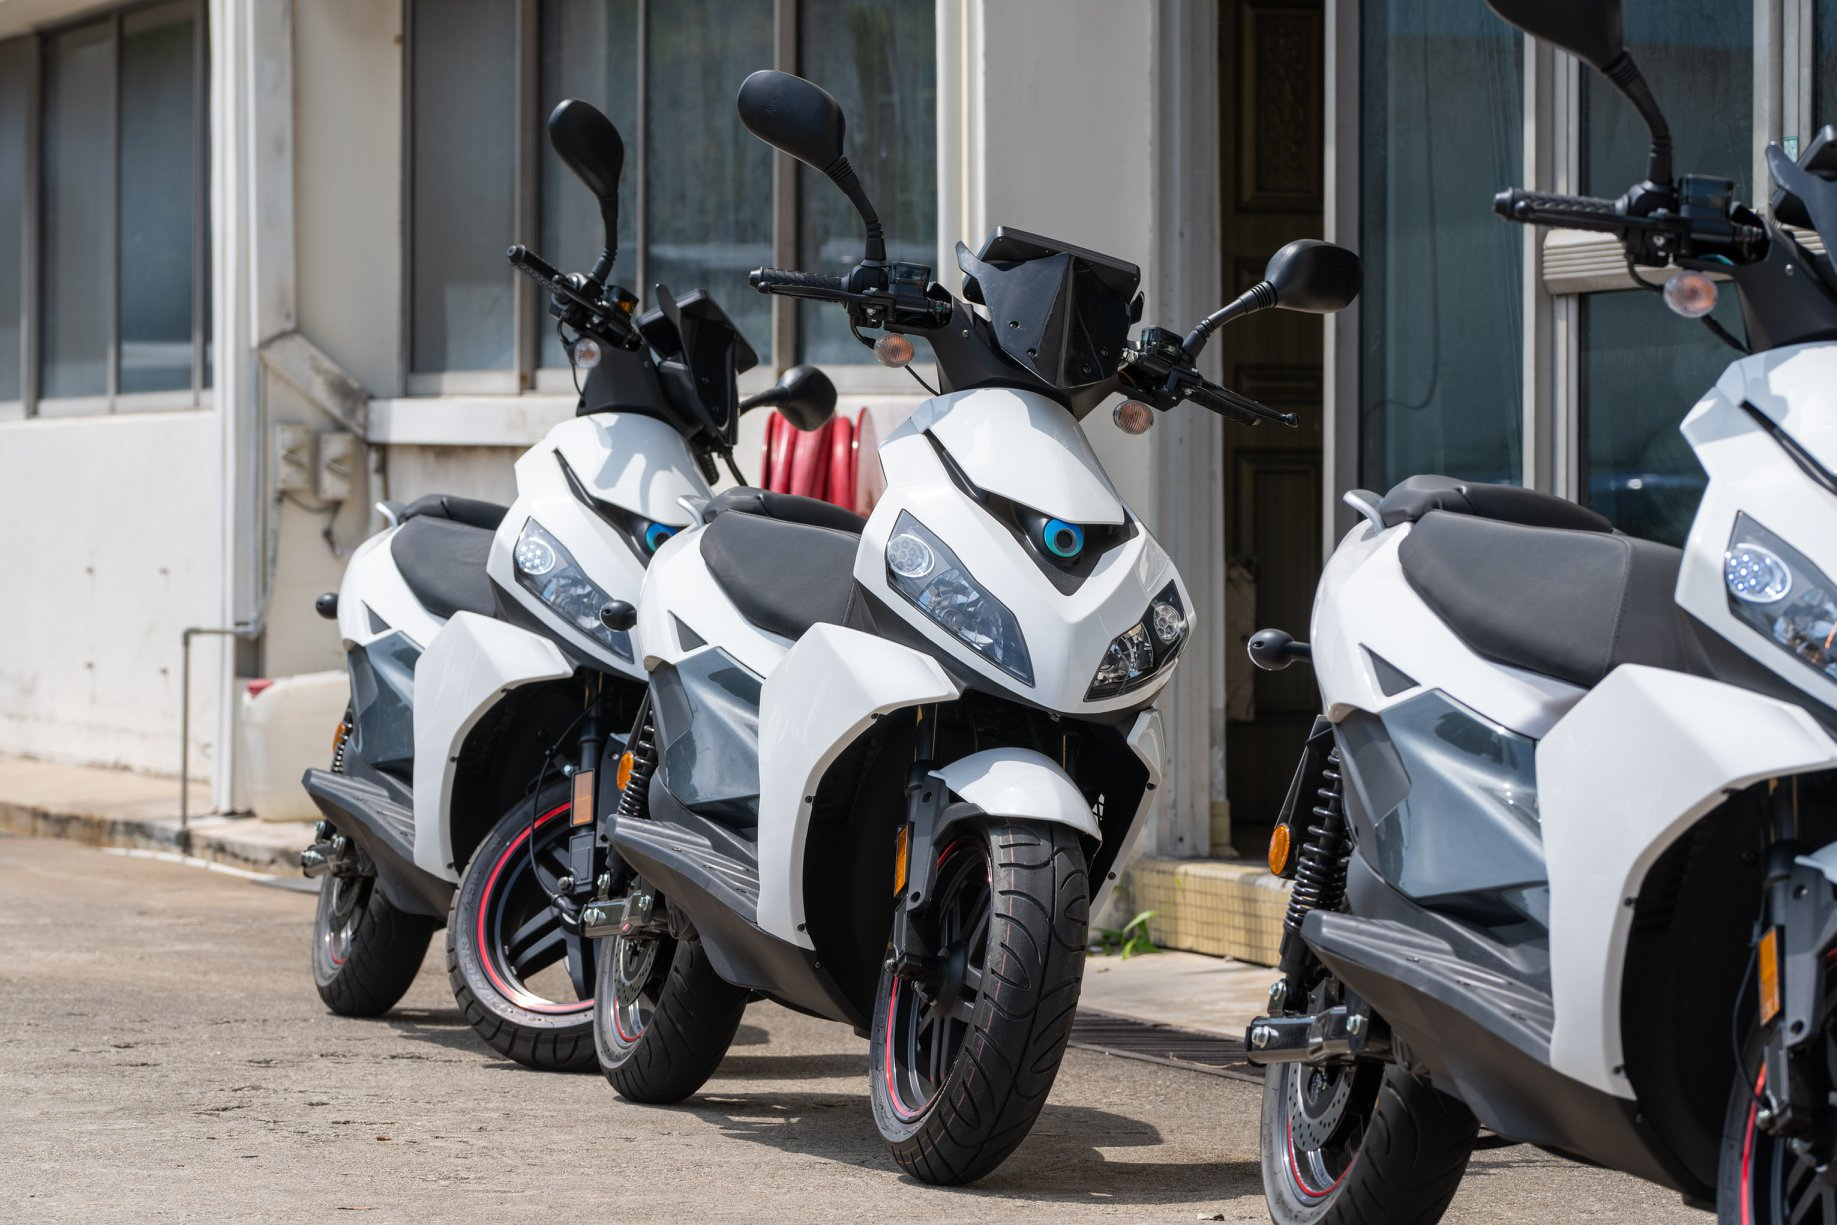 SG's ION Mobility Secures US.3M to Drive SEA's 200M Motorcycle Users to Use EVs, Starting with Indonesia